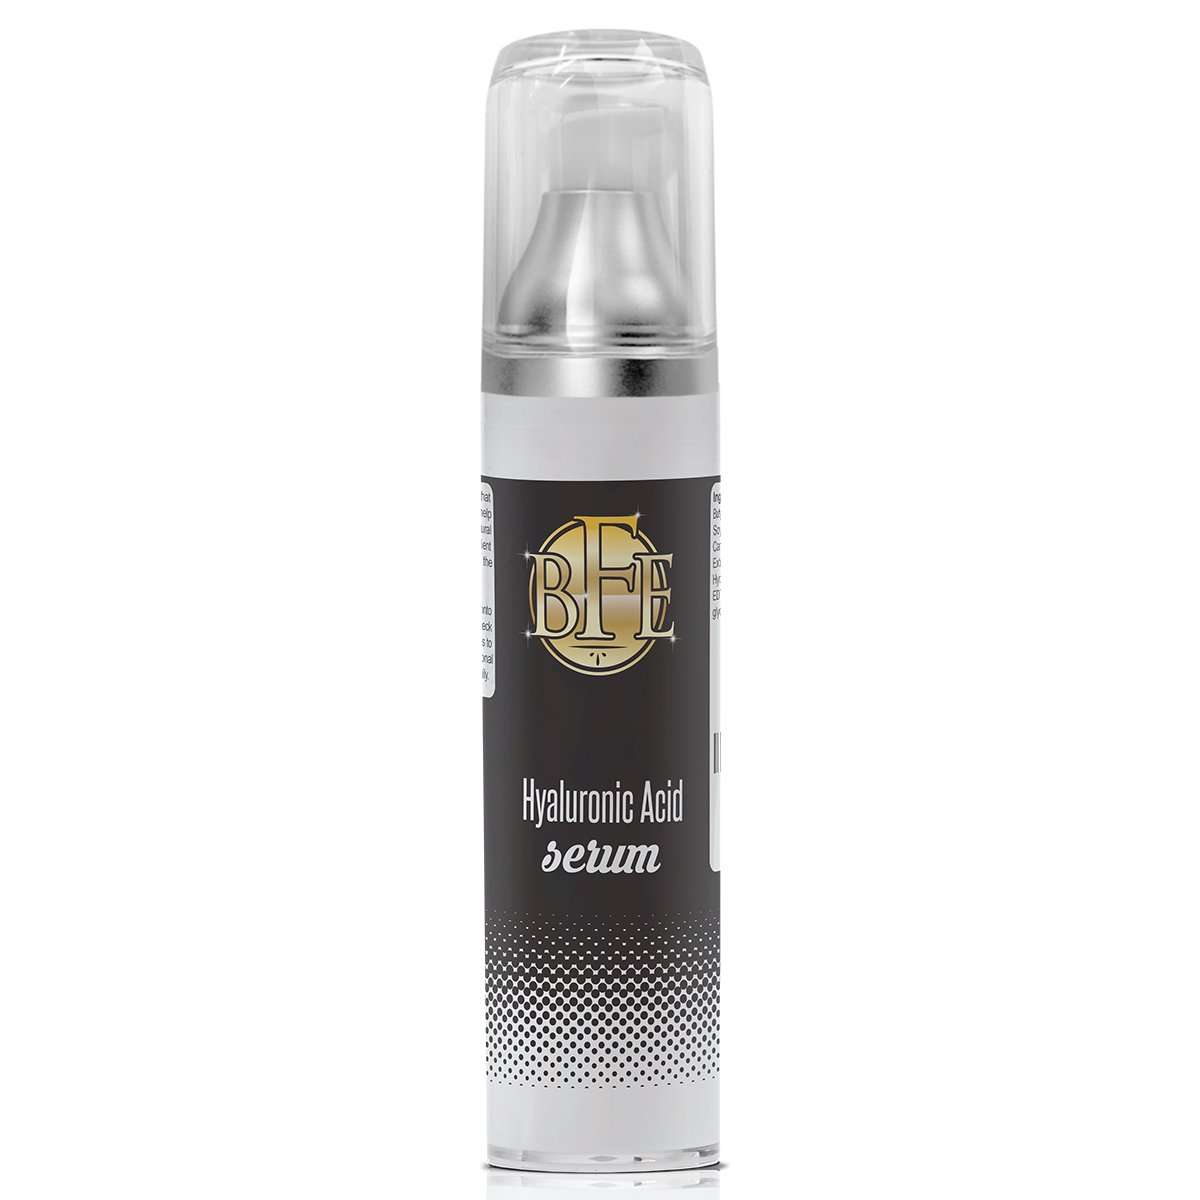 Hyaluronic Acid Serum – Powerful Anti Aging Hydration Formula Provides Extra Moisture to Dry Skin. Reduces Fine Lines & Wrinkles while Firming & Plumping Skin. For Men & Women. No Oily Feel.